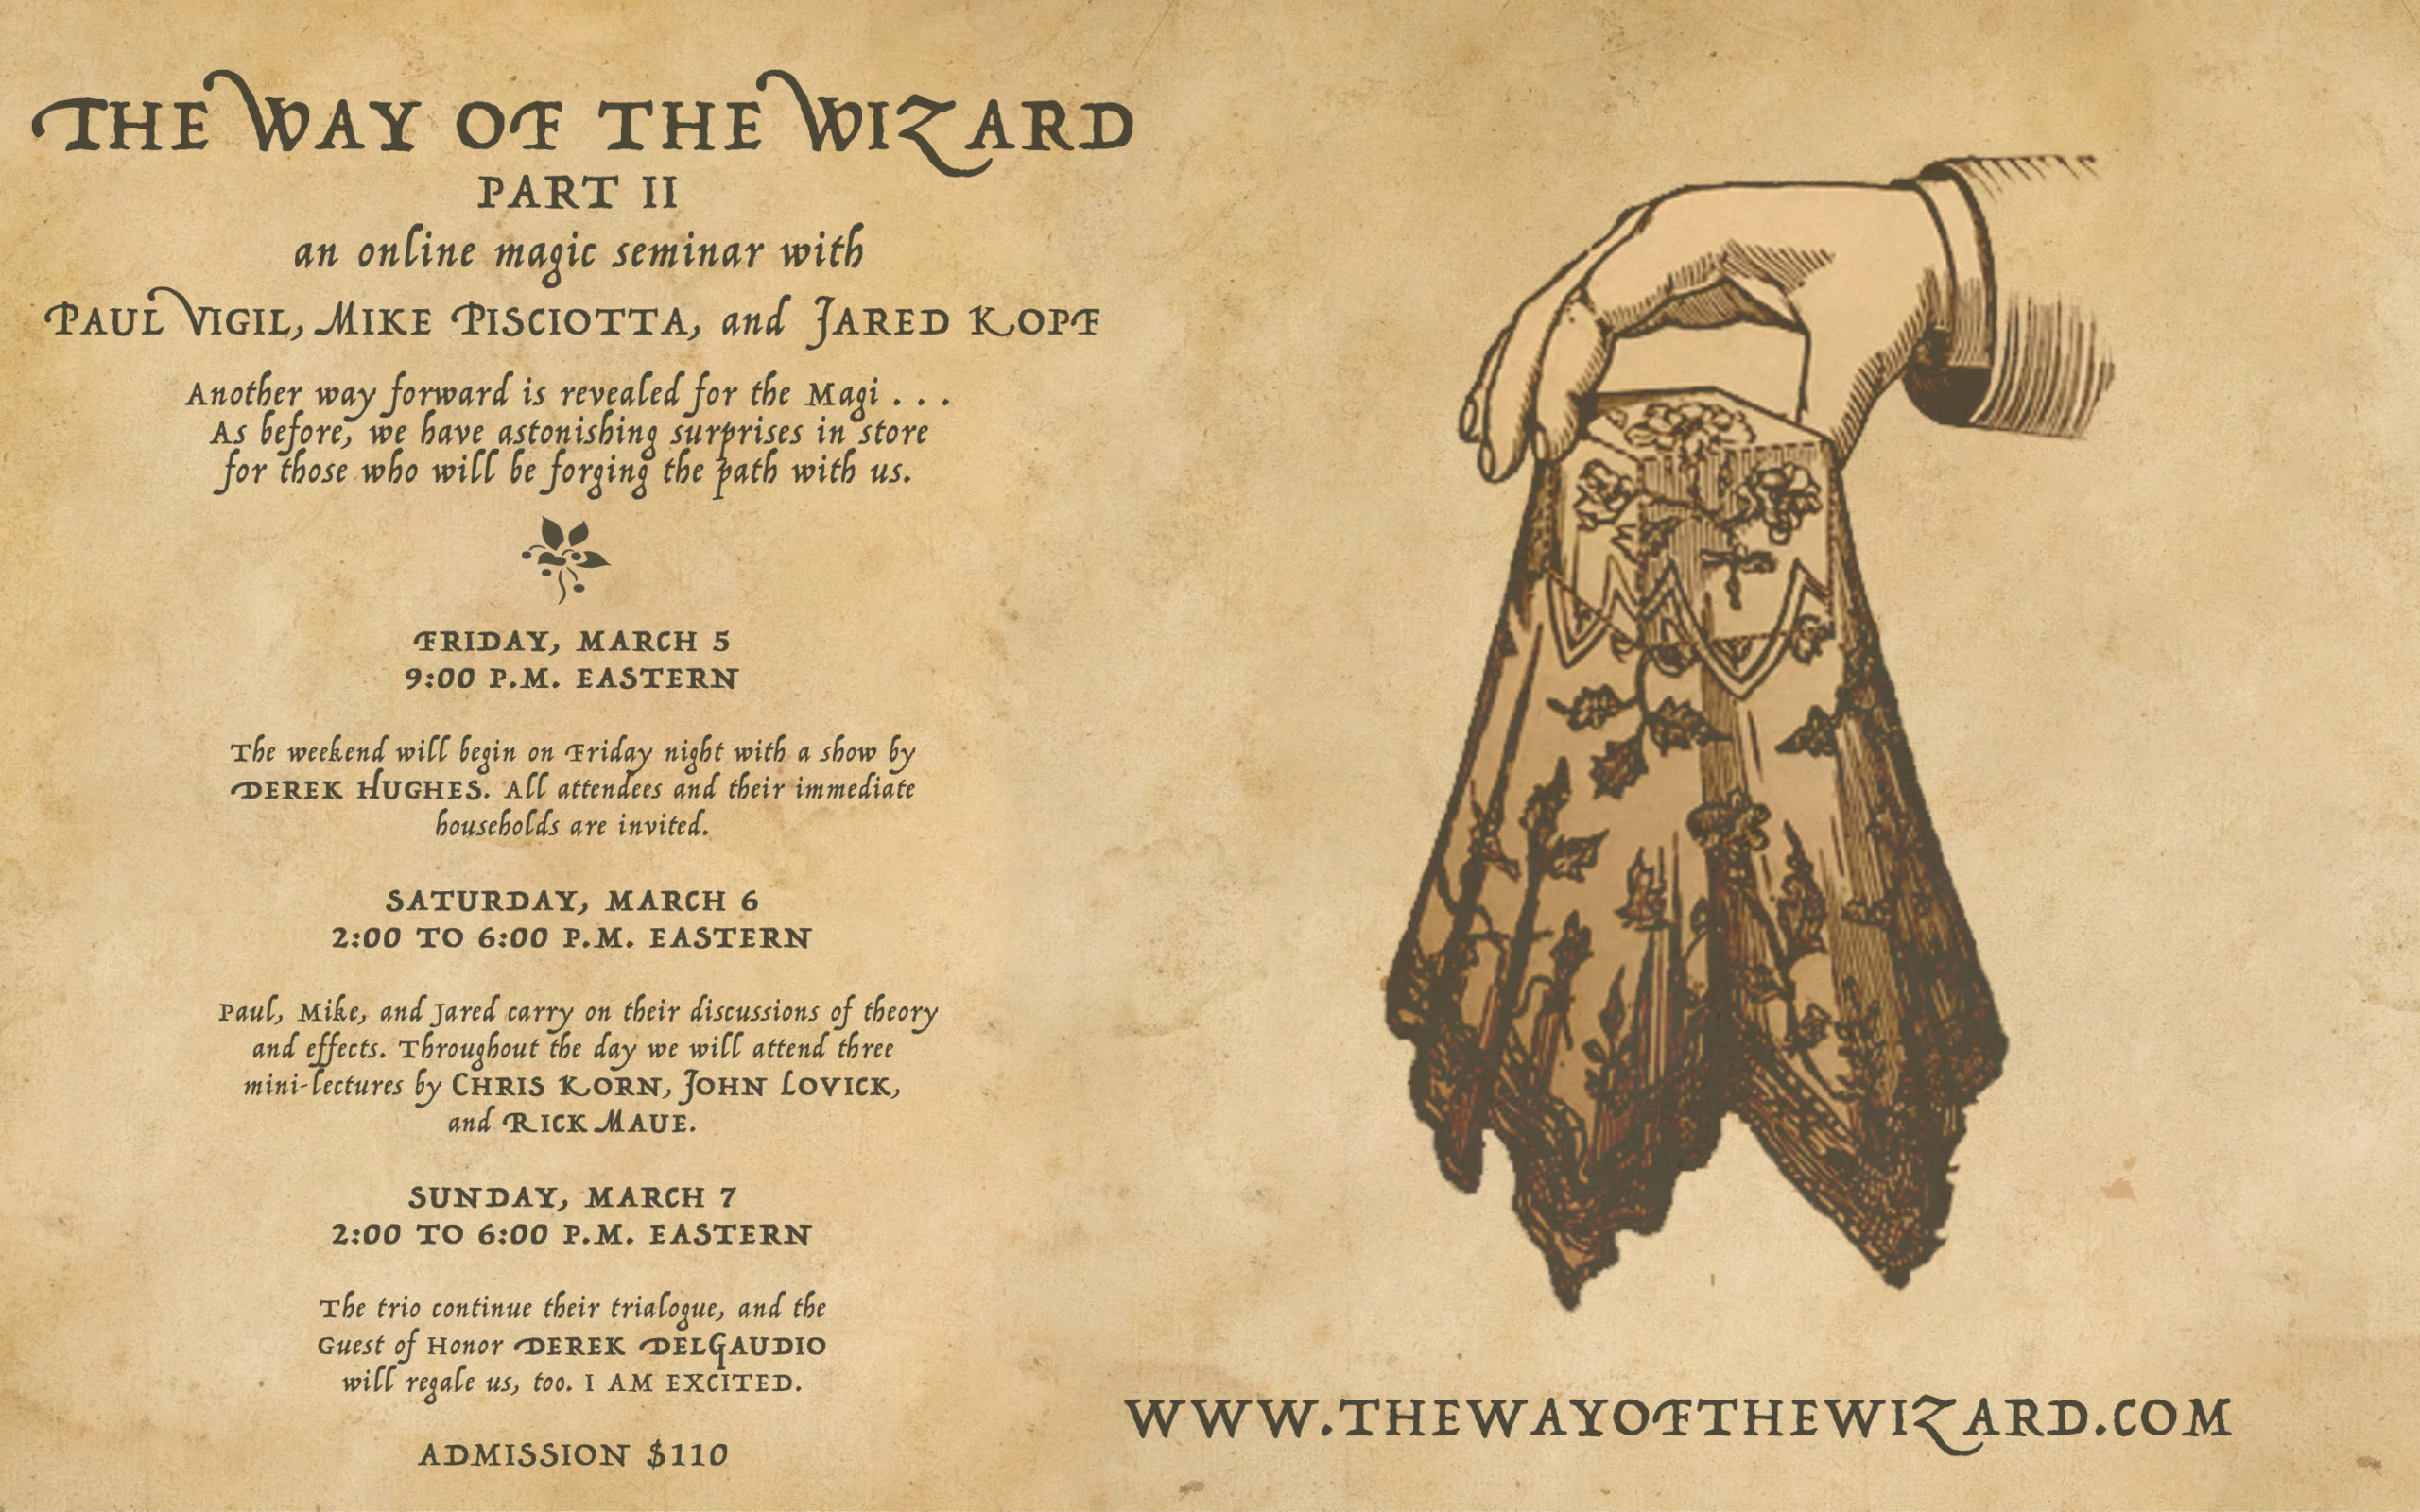 The Way of the Wizard II